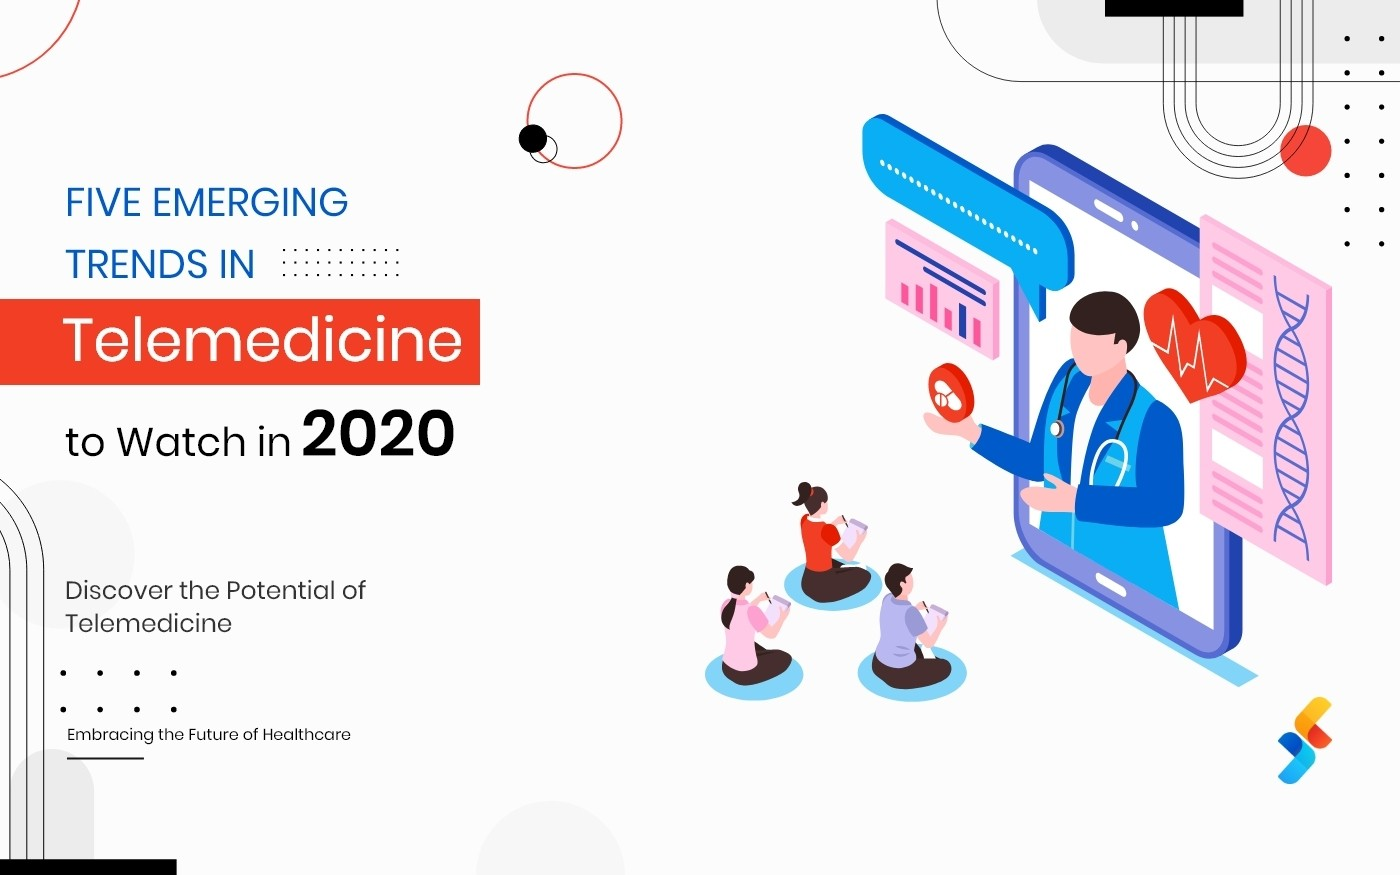 Five Emerging Trends in Telemedicine to Watch in 2020